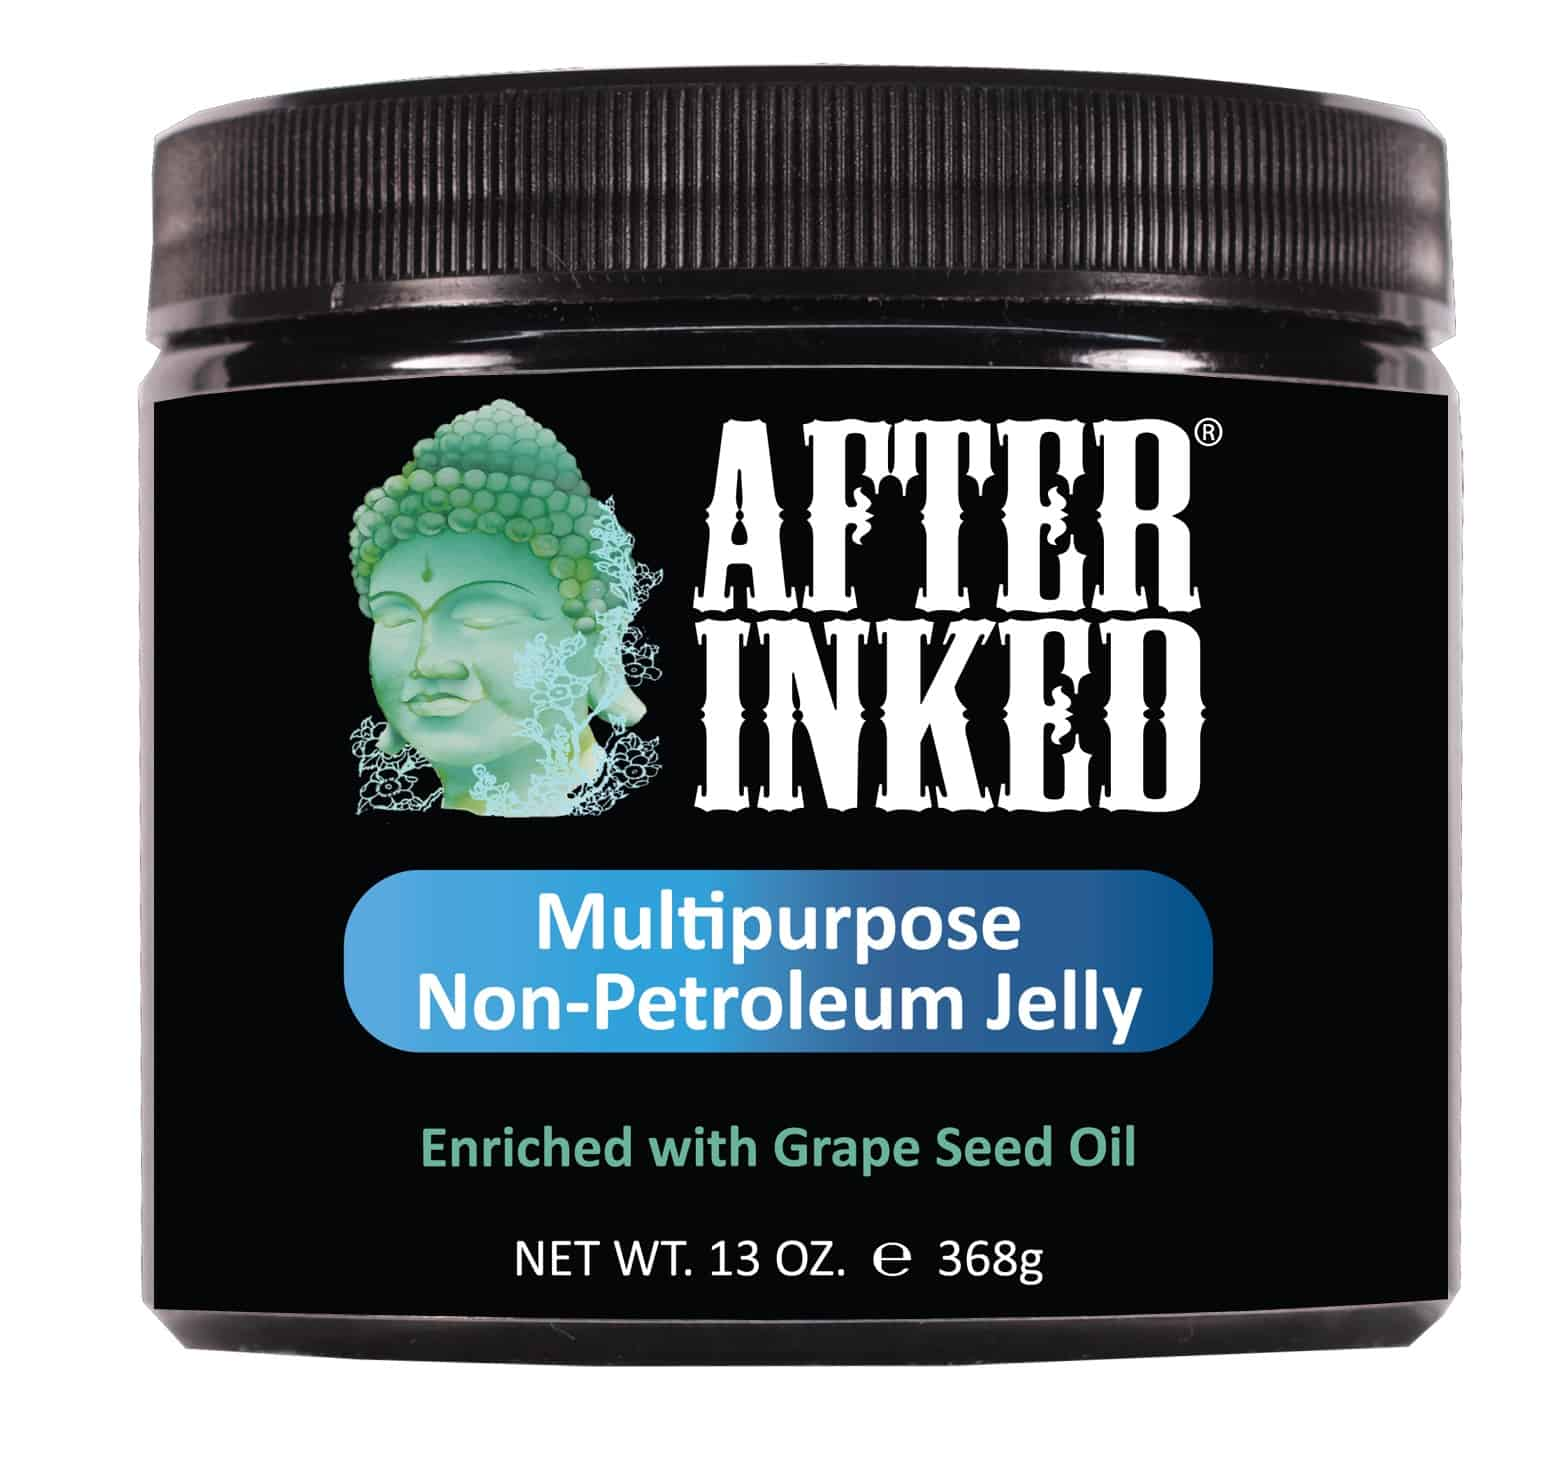 Multi-purpose Non-petroleum Jelly